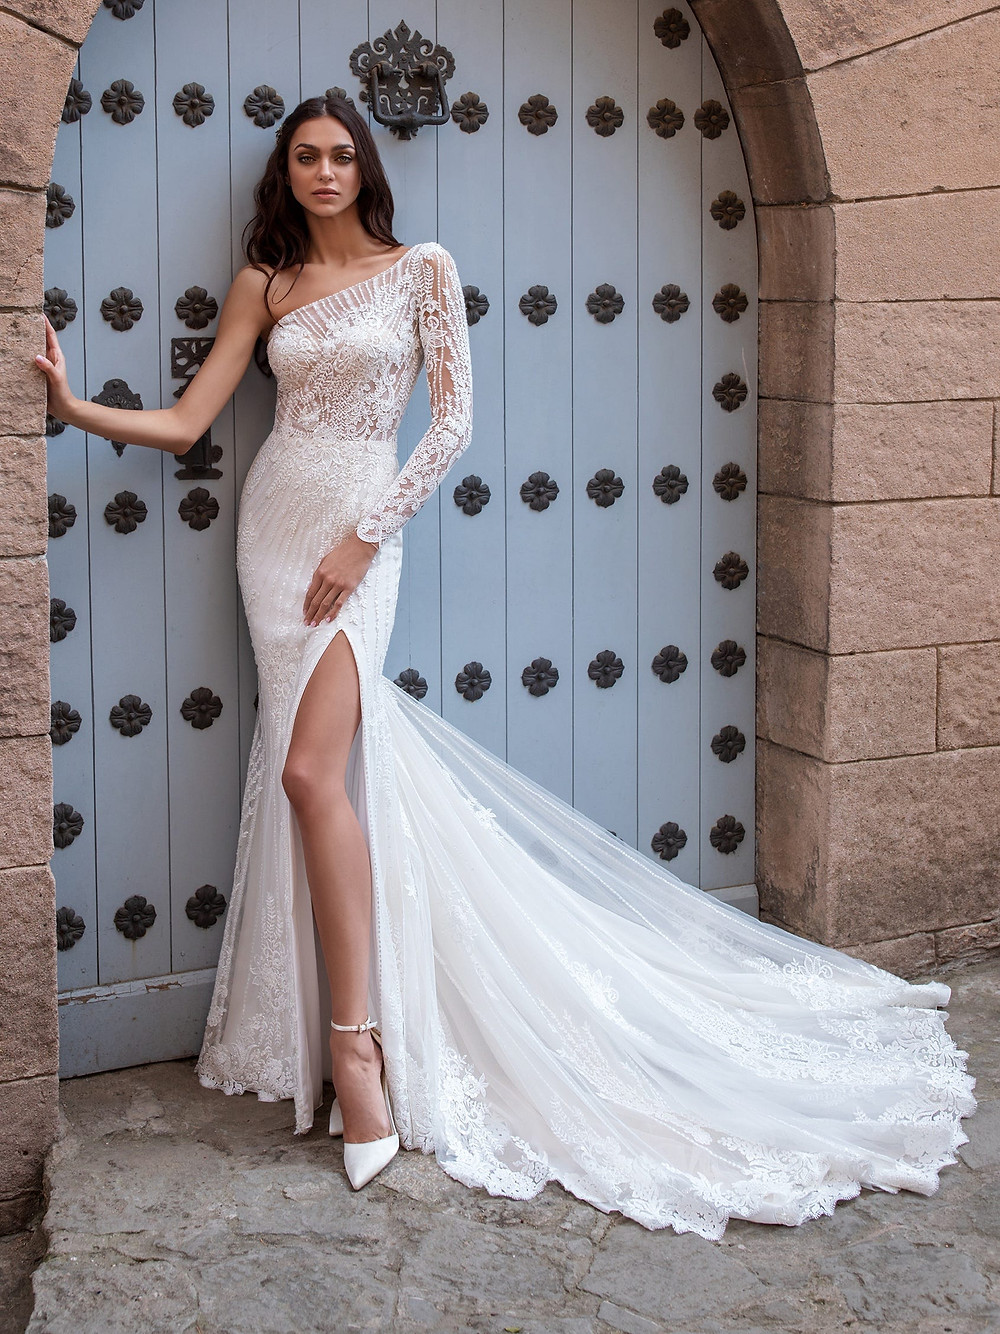 A Pronovias long sleeve, one shoulder mermaid wedding dress, with lace and detailed embellishments